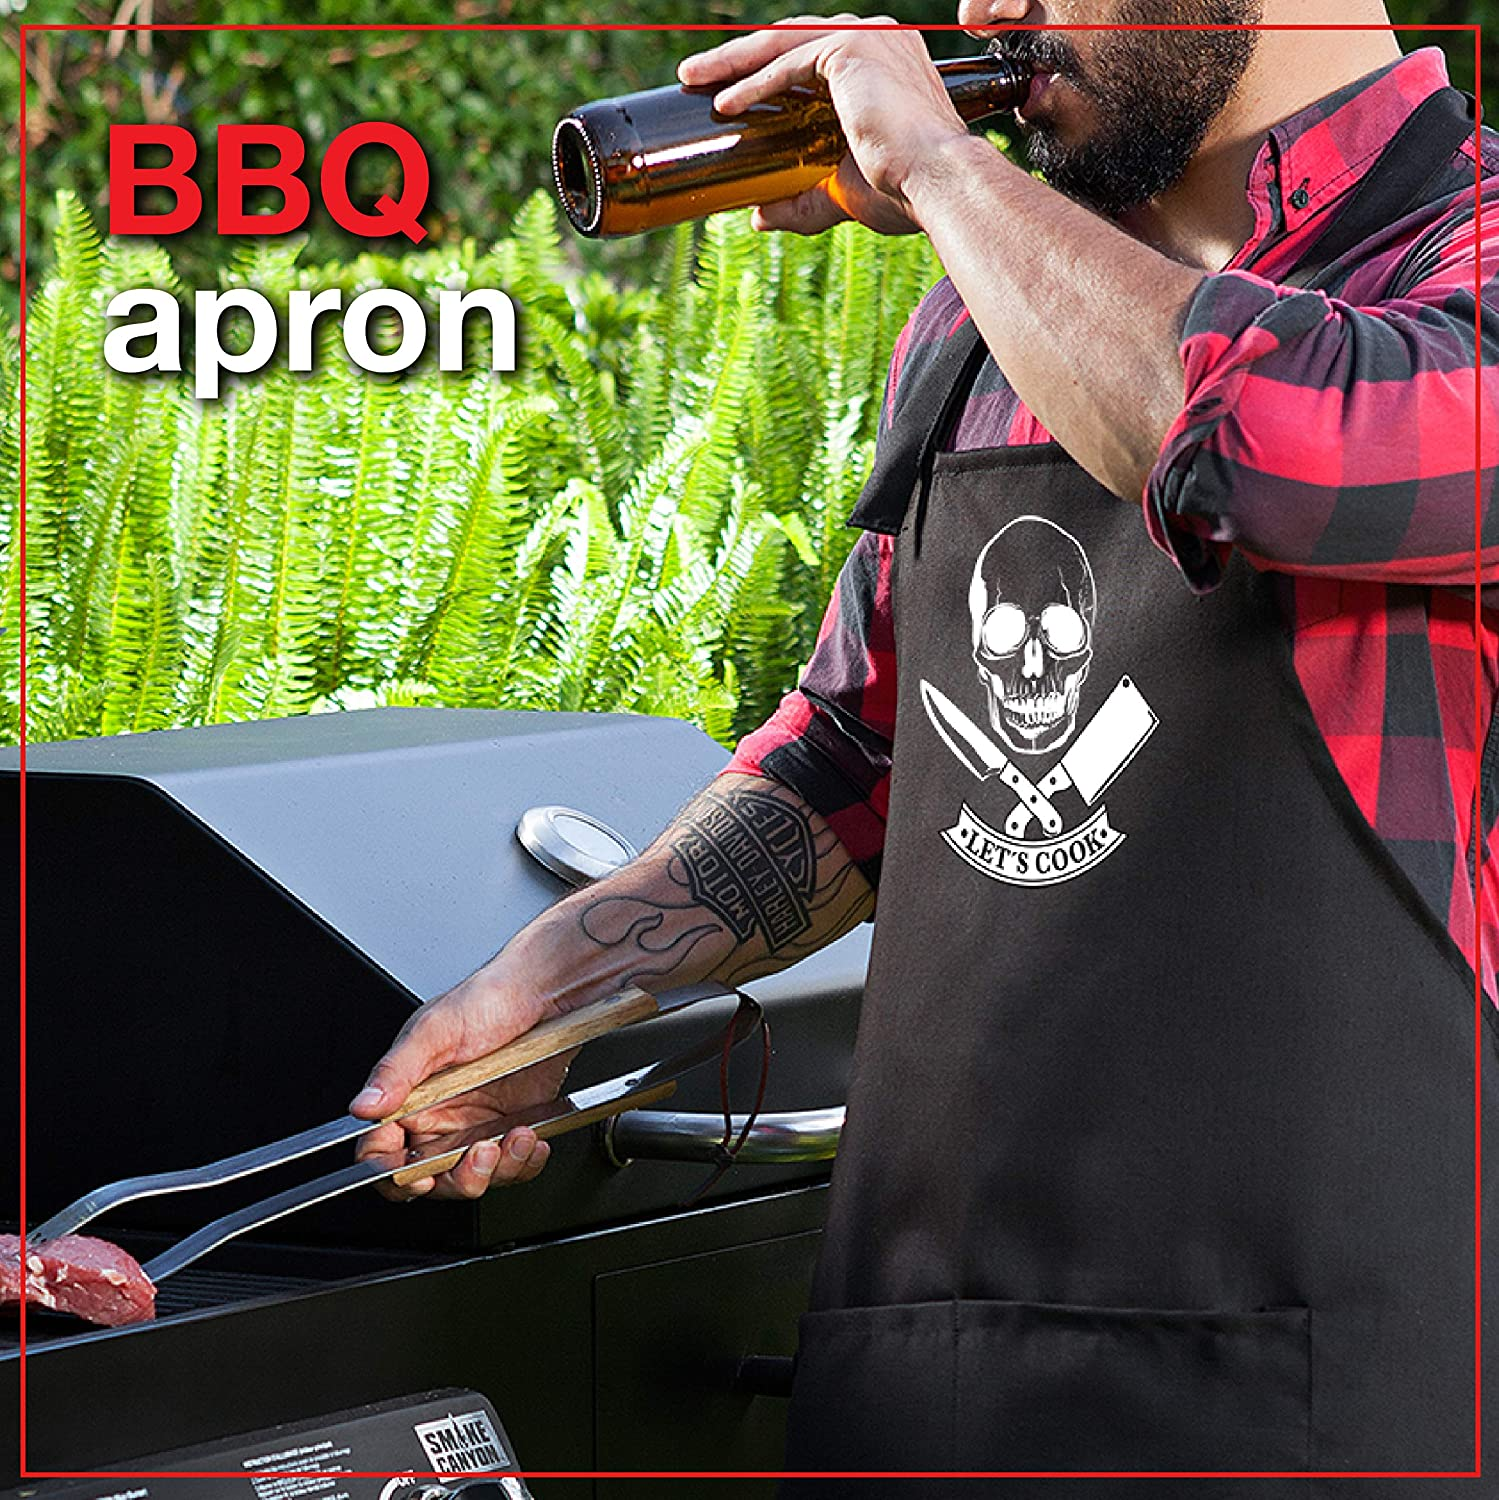 One Size Fits All Premium Quality Kitchen Apron for Men Comfortable /& Practical StarGifts BBQ Funny Aprons for Men Skull Cook ☠️ Ideal BBQ Accessories Chef Kitchen Grilling